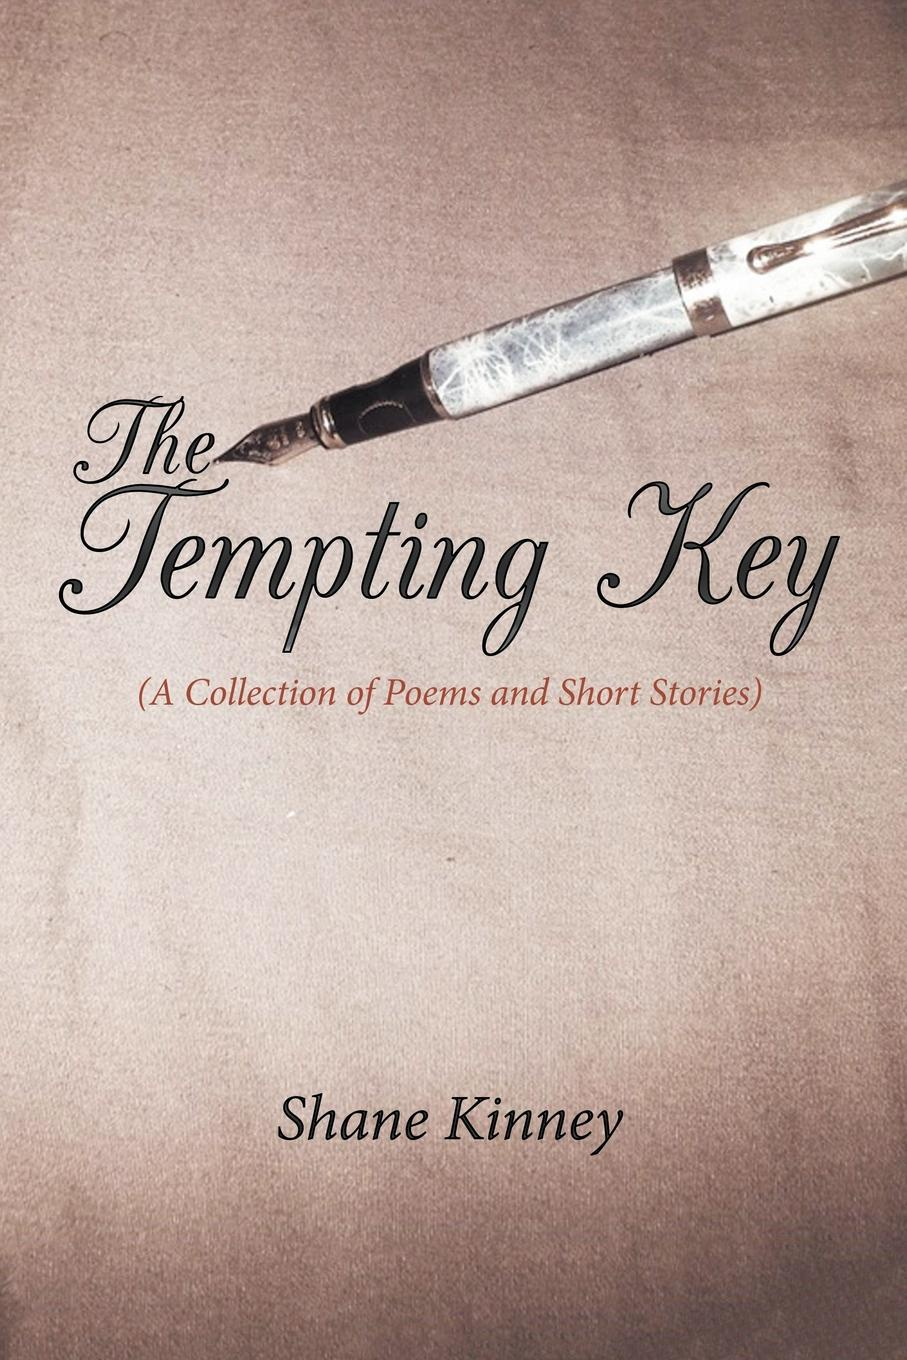 Shane Kinney The Tempting Key. (A Collection of Poems and Short Stories) brittany tempel pretty bird a collection of poems and short stories